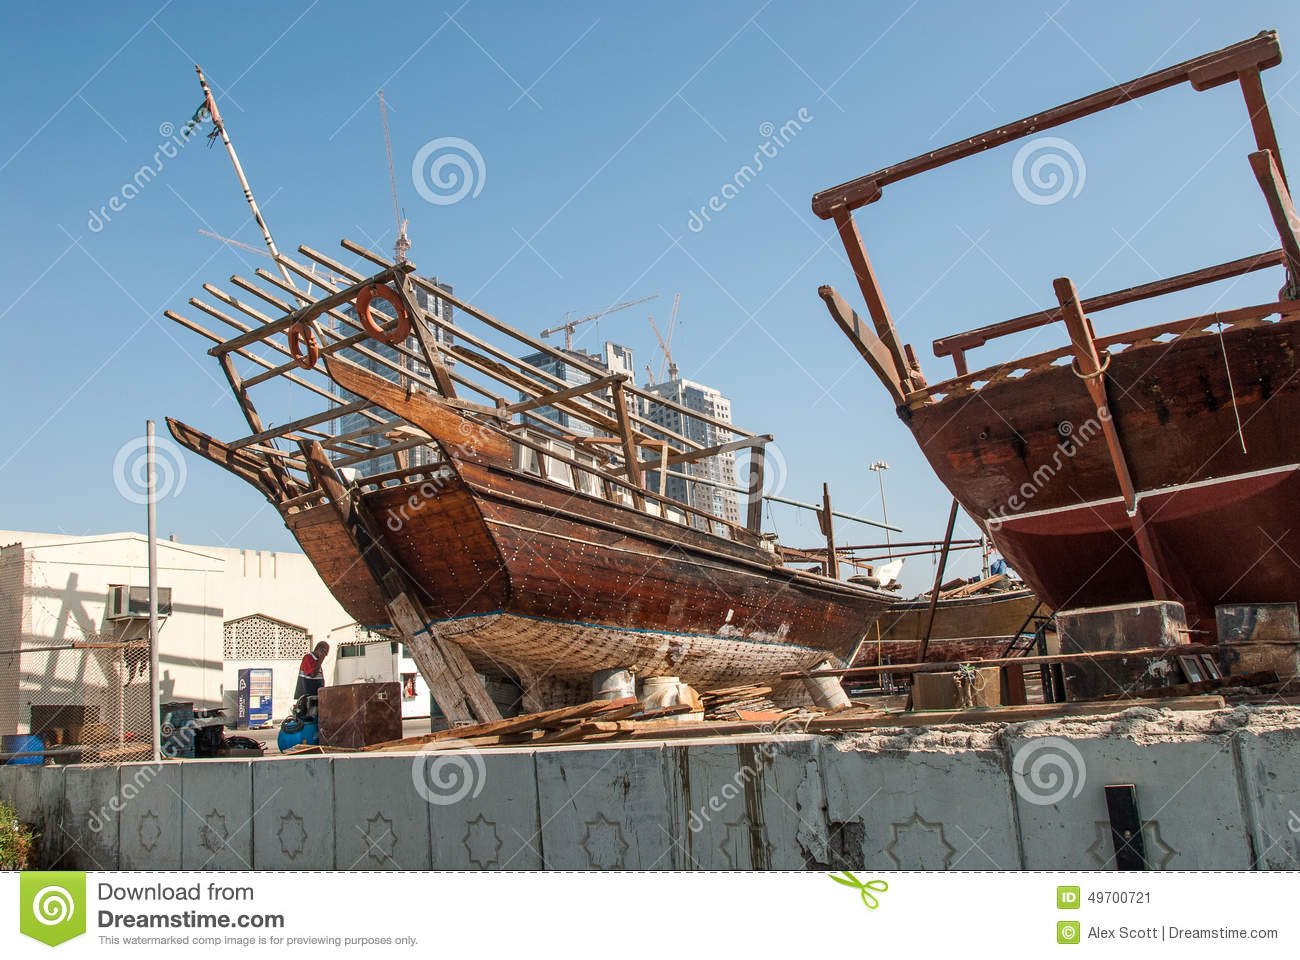 Traditional RAcing Dhows In Abu Dhabi Stock Image - Image of